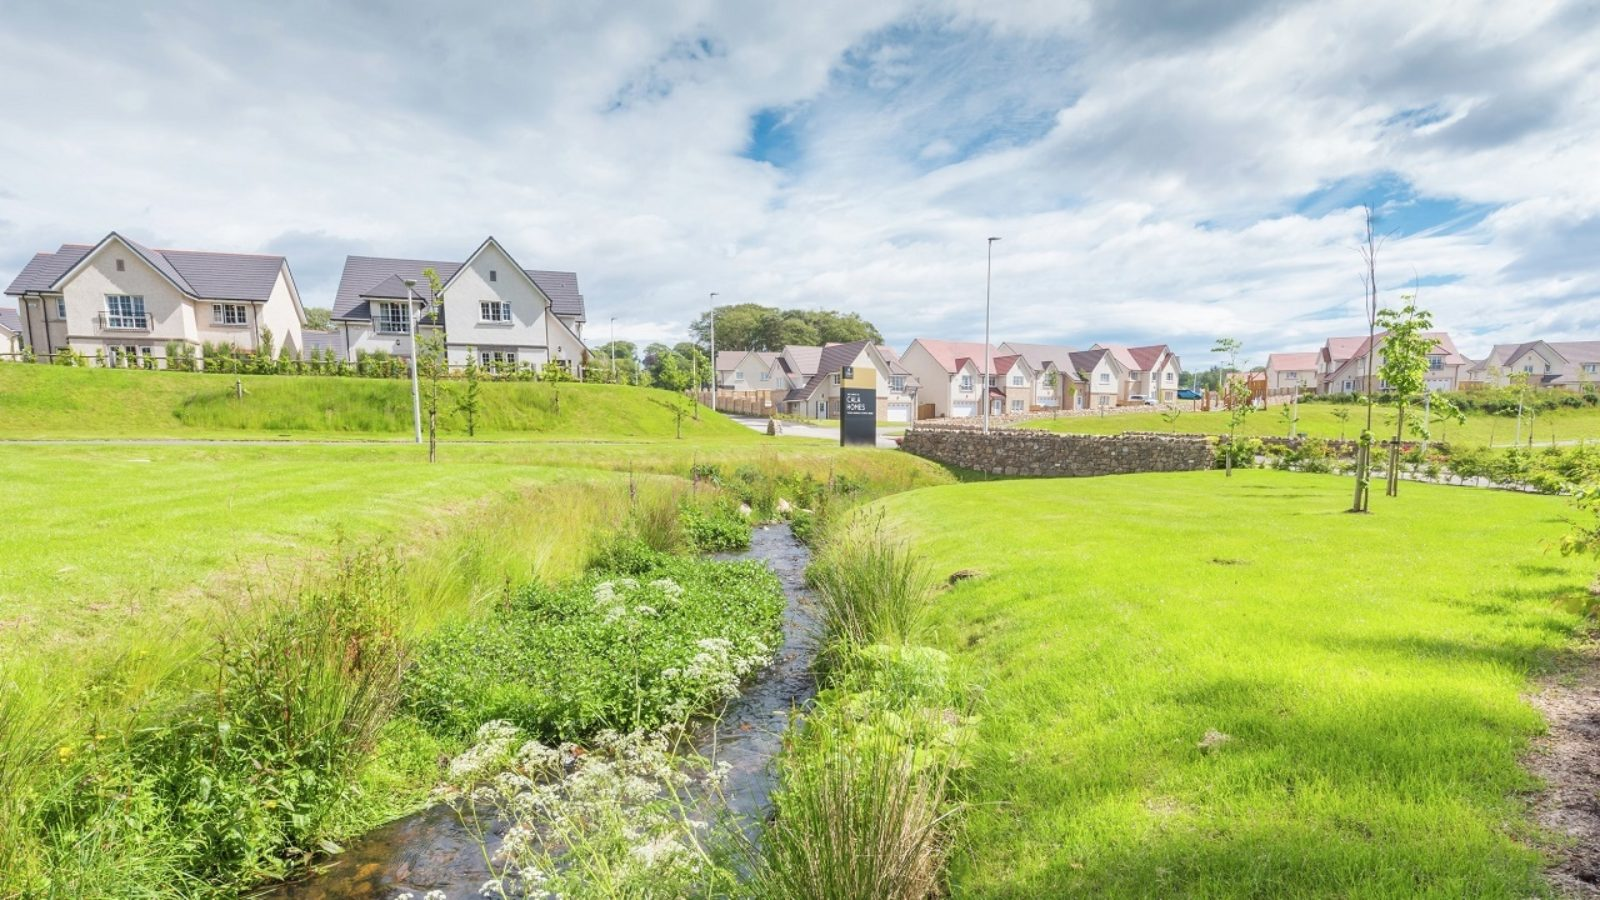 New Cults development approved for CALA Homes